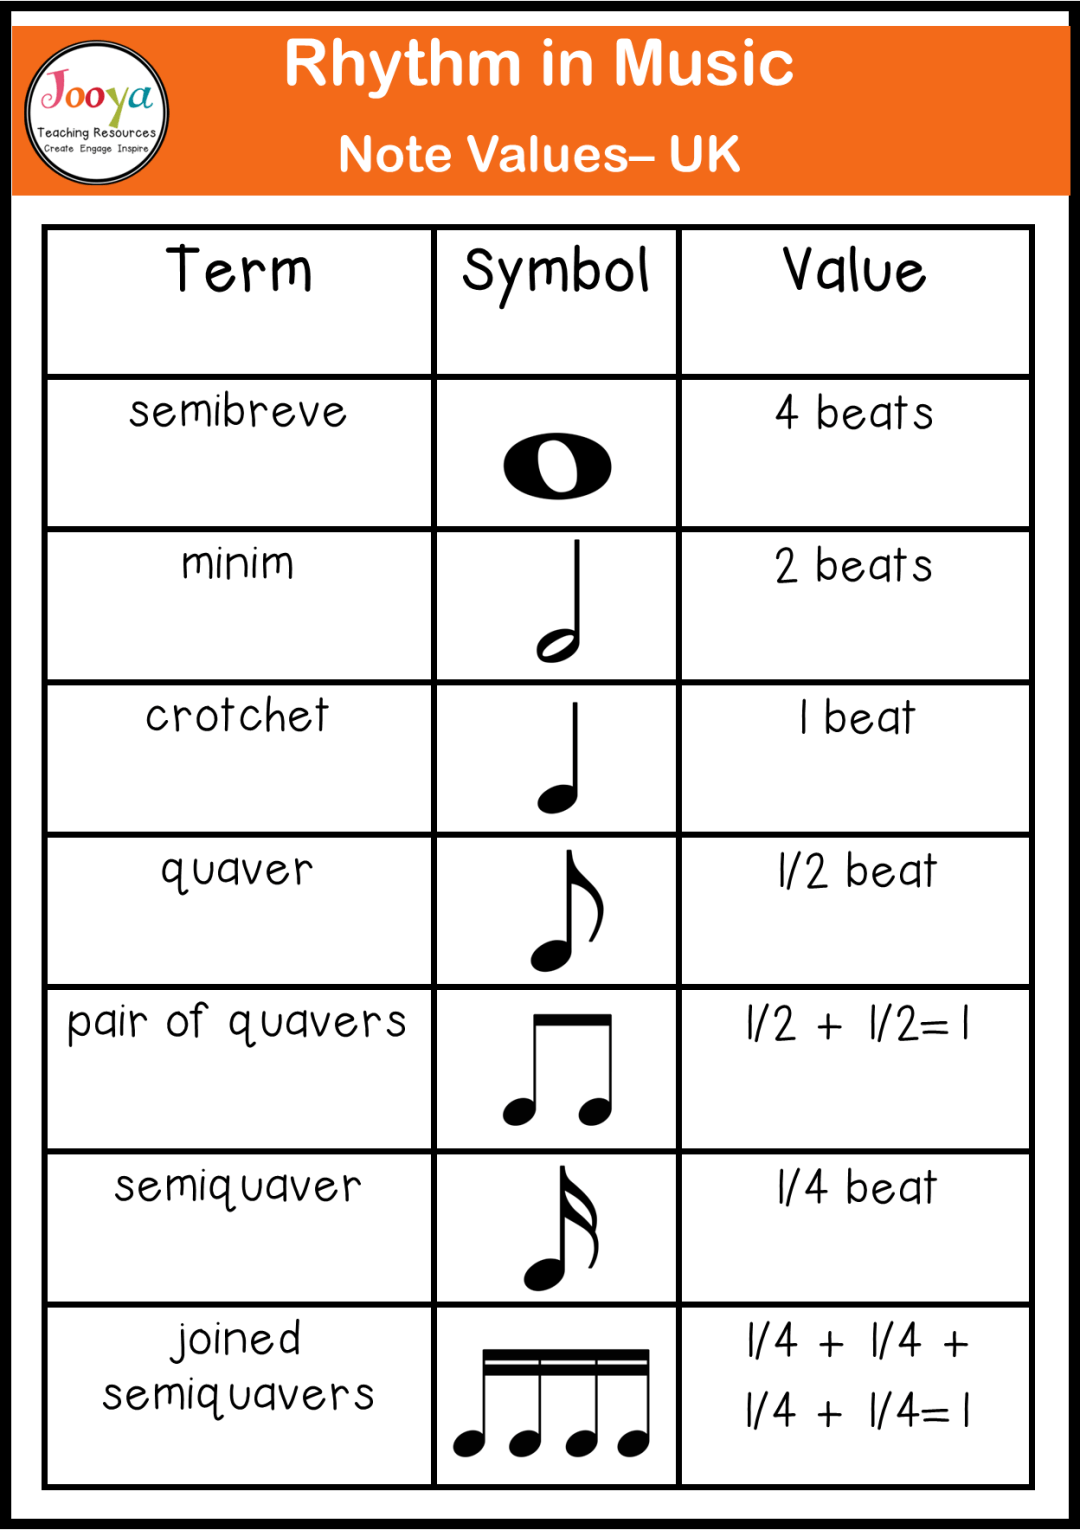 rhythm-in-music-note-values-chart-UK-note-names